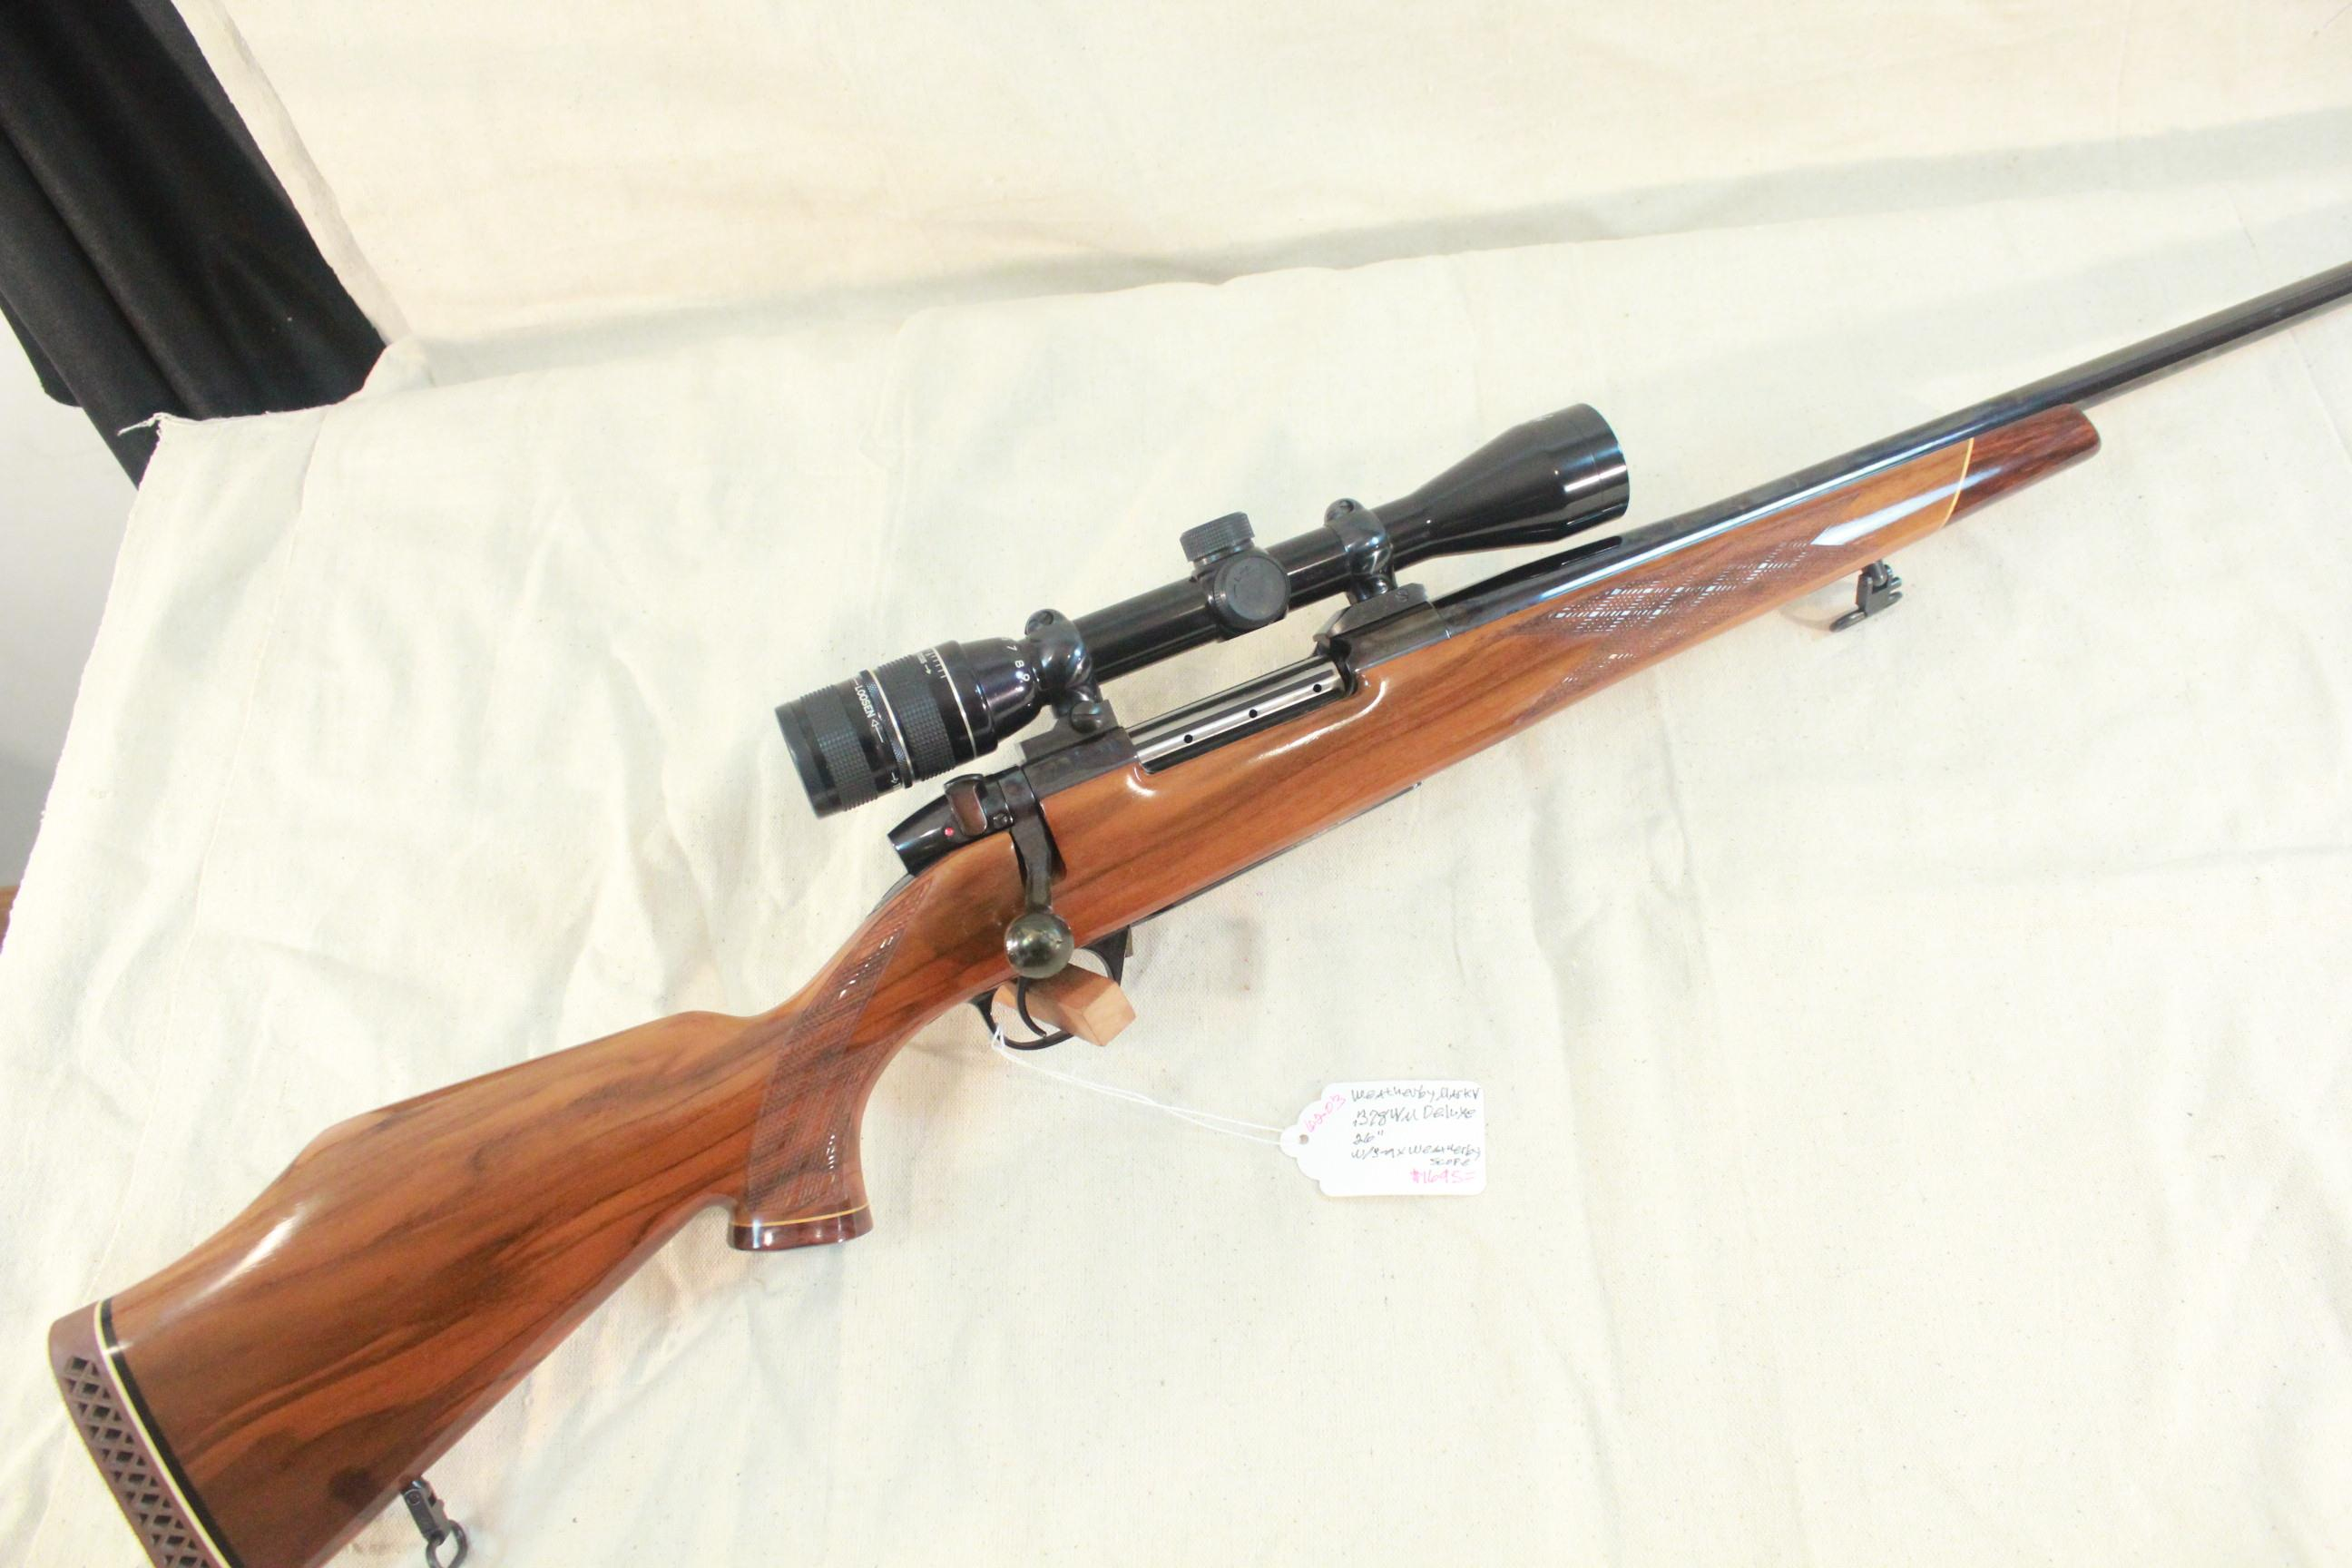 Weatherby Mark V Deluxe in .378 WM with a 3-9x Weatherby Premier scope  Guns > Rifles > Weatherby Rifles > Sporting